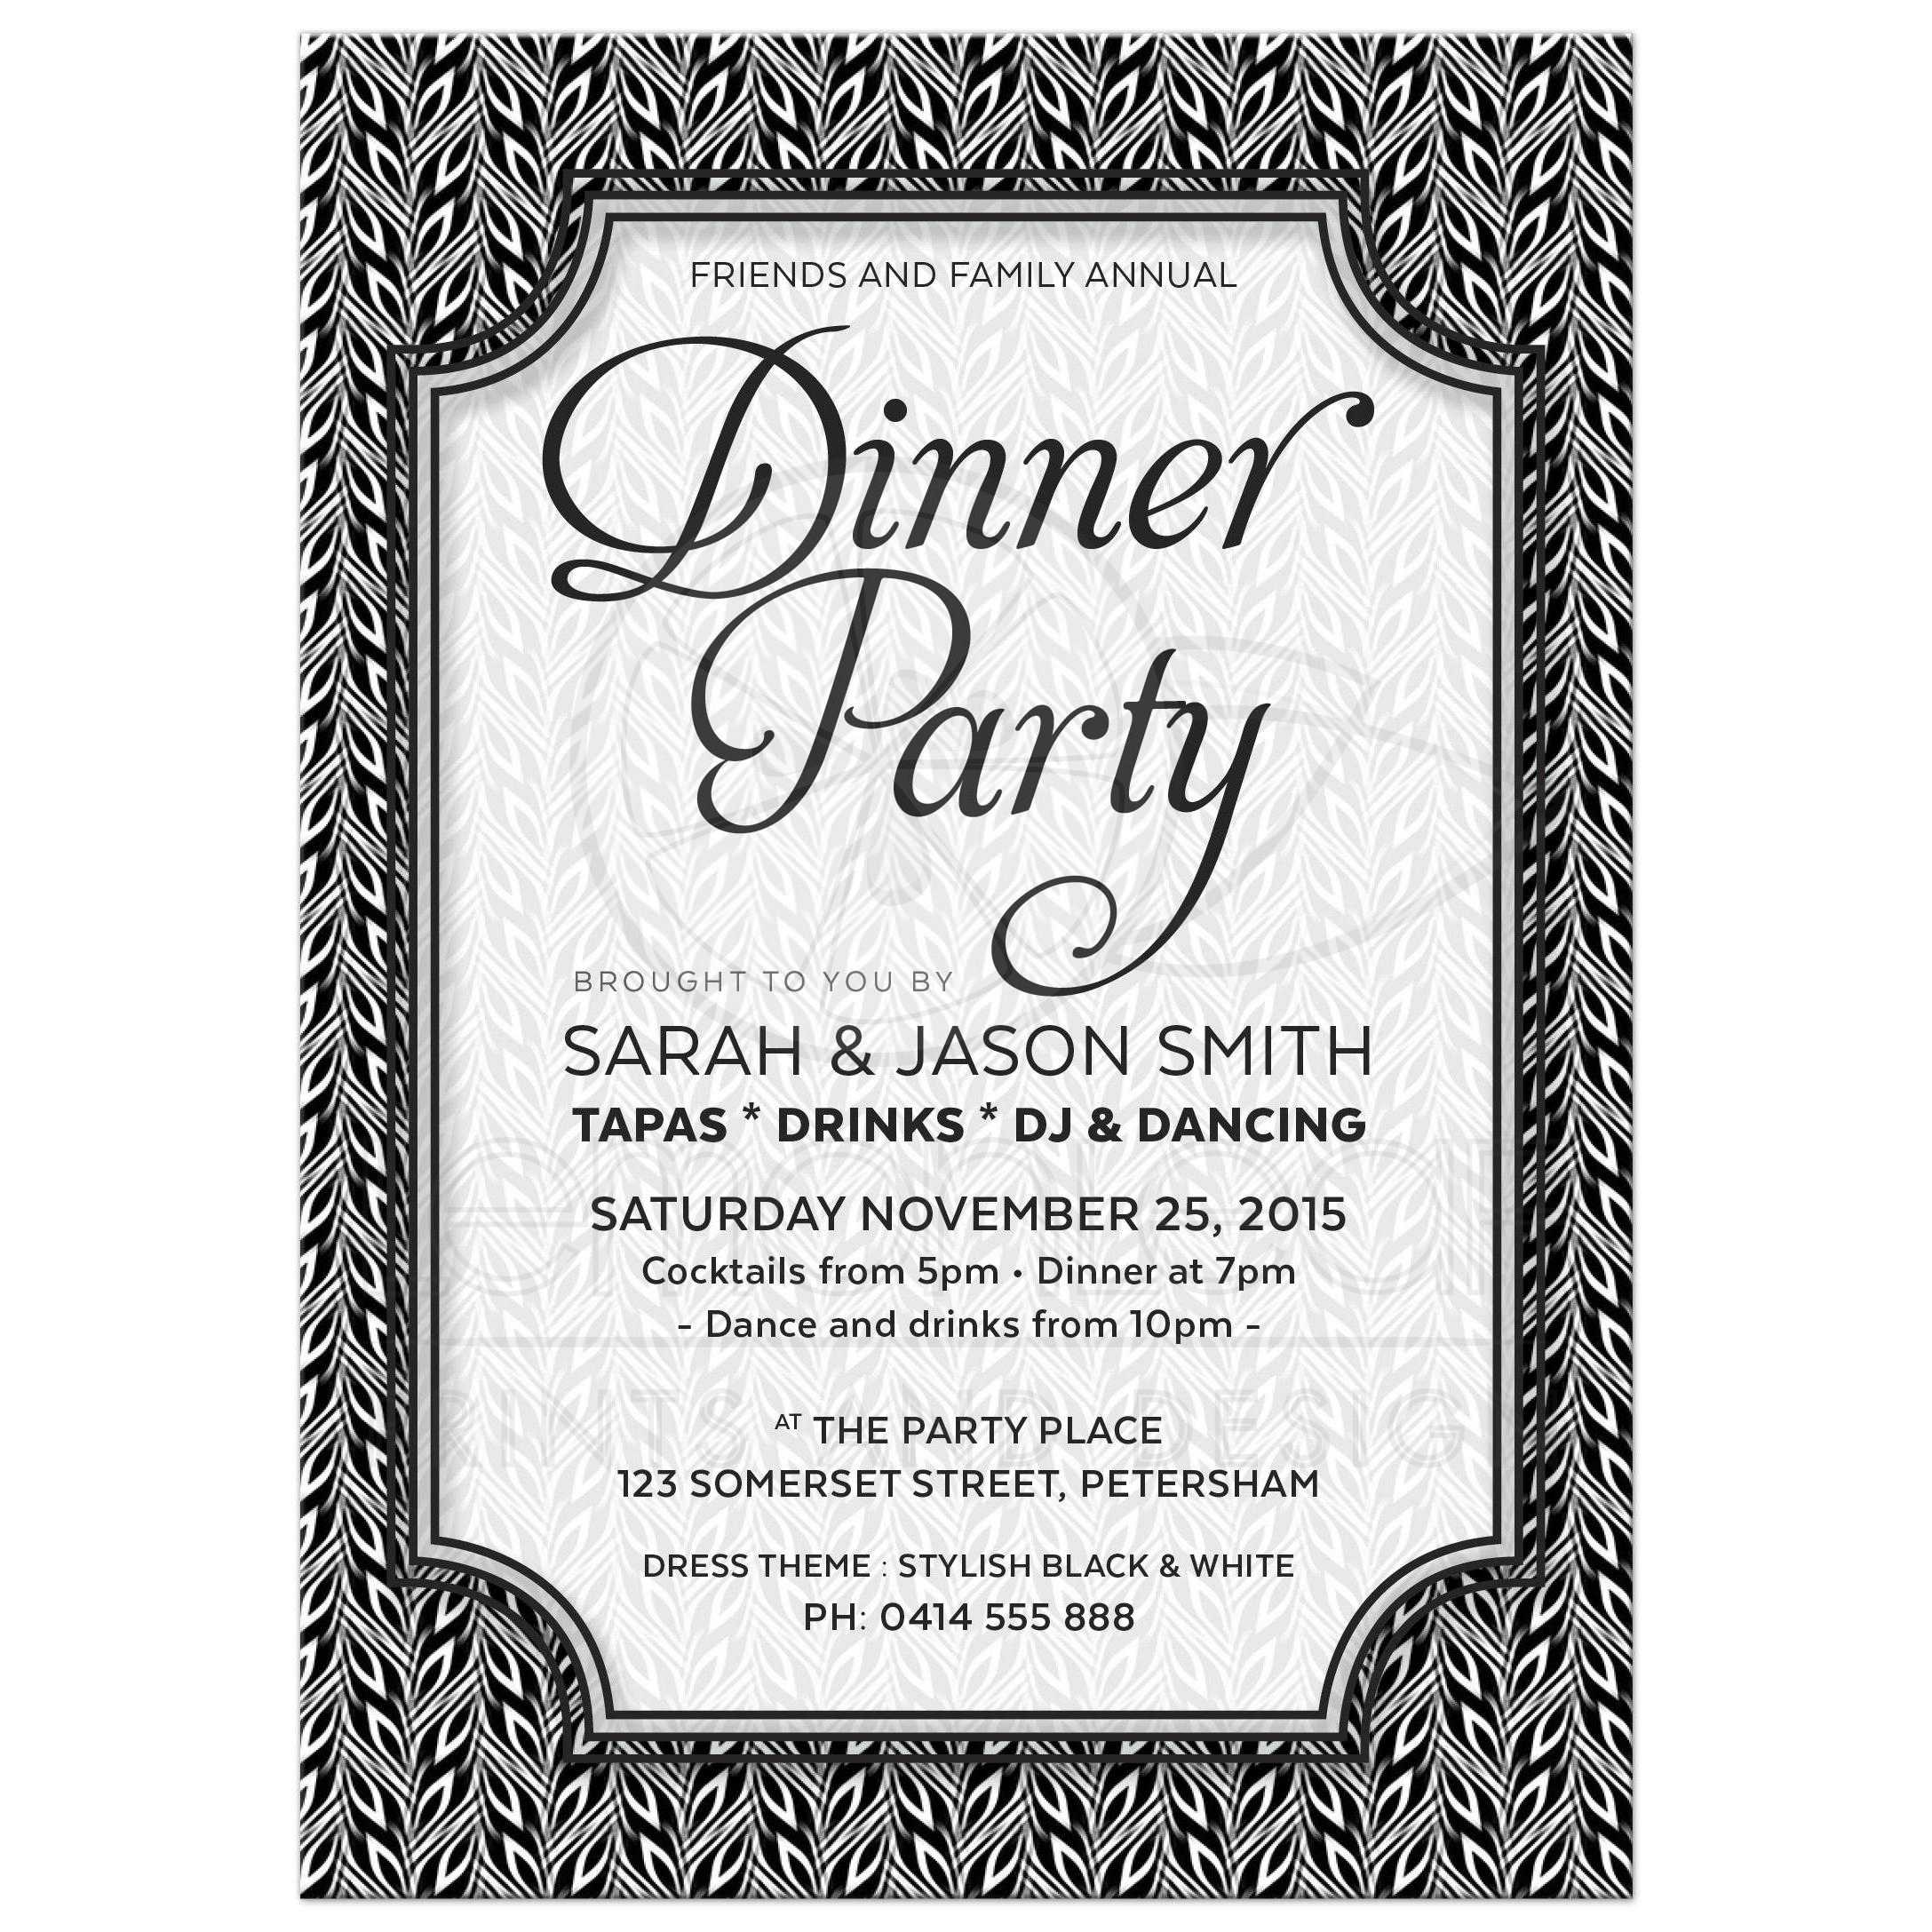 Black and White Dinner Party Invitation | Simply Stylish 02